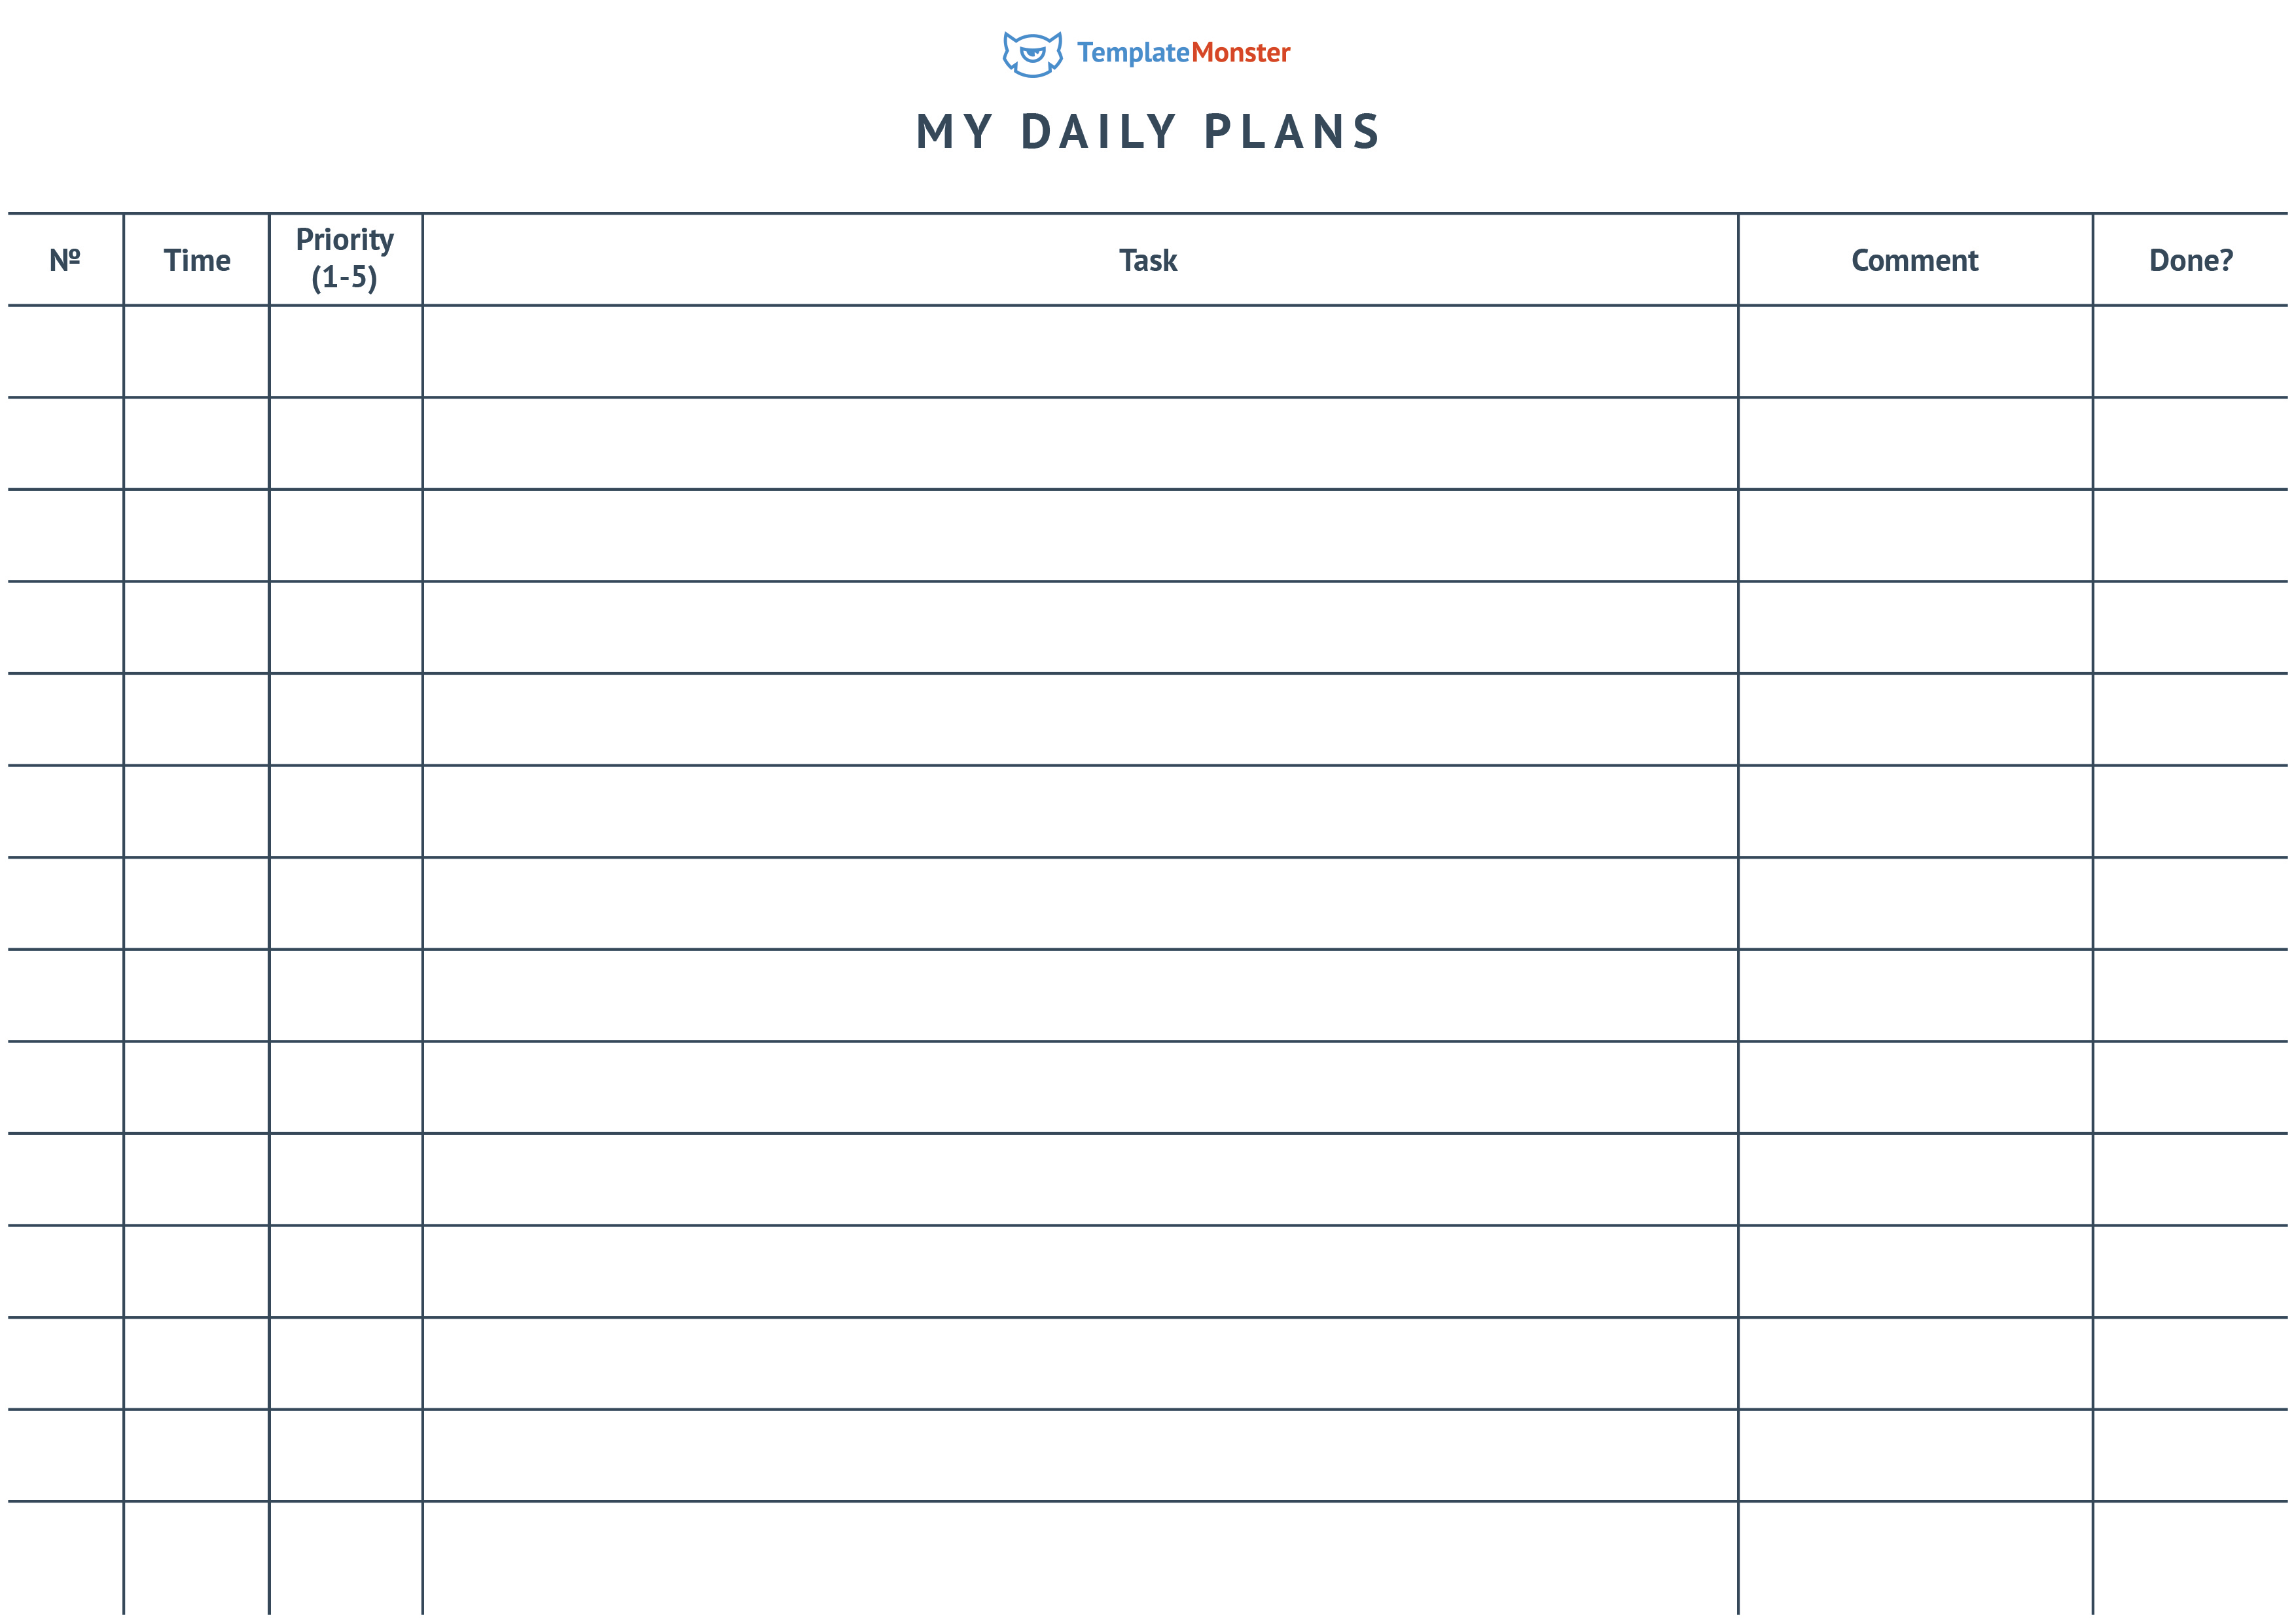 daily-plans-1